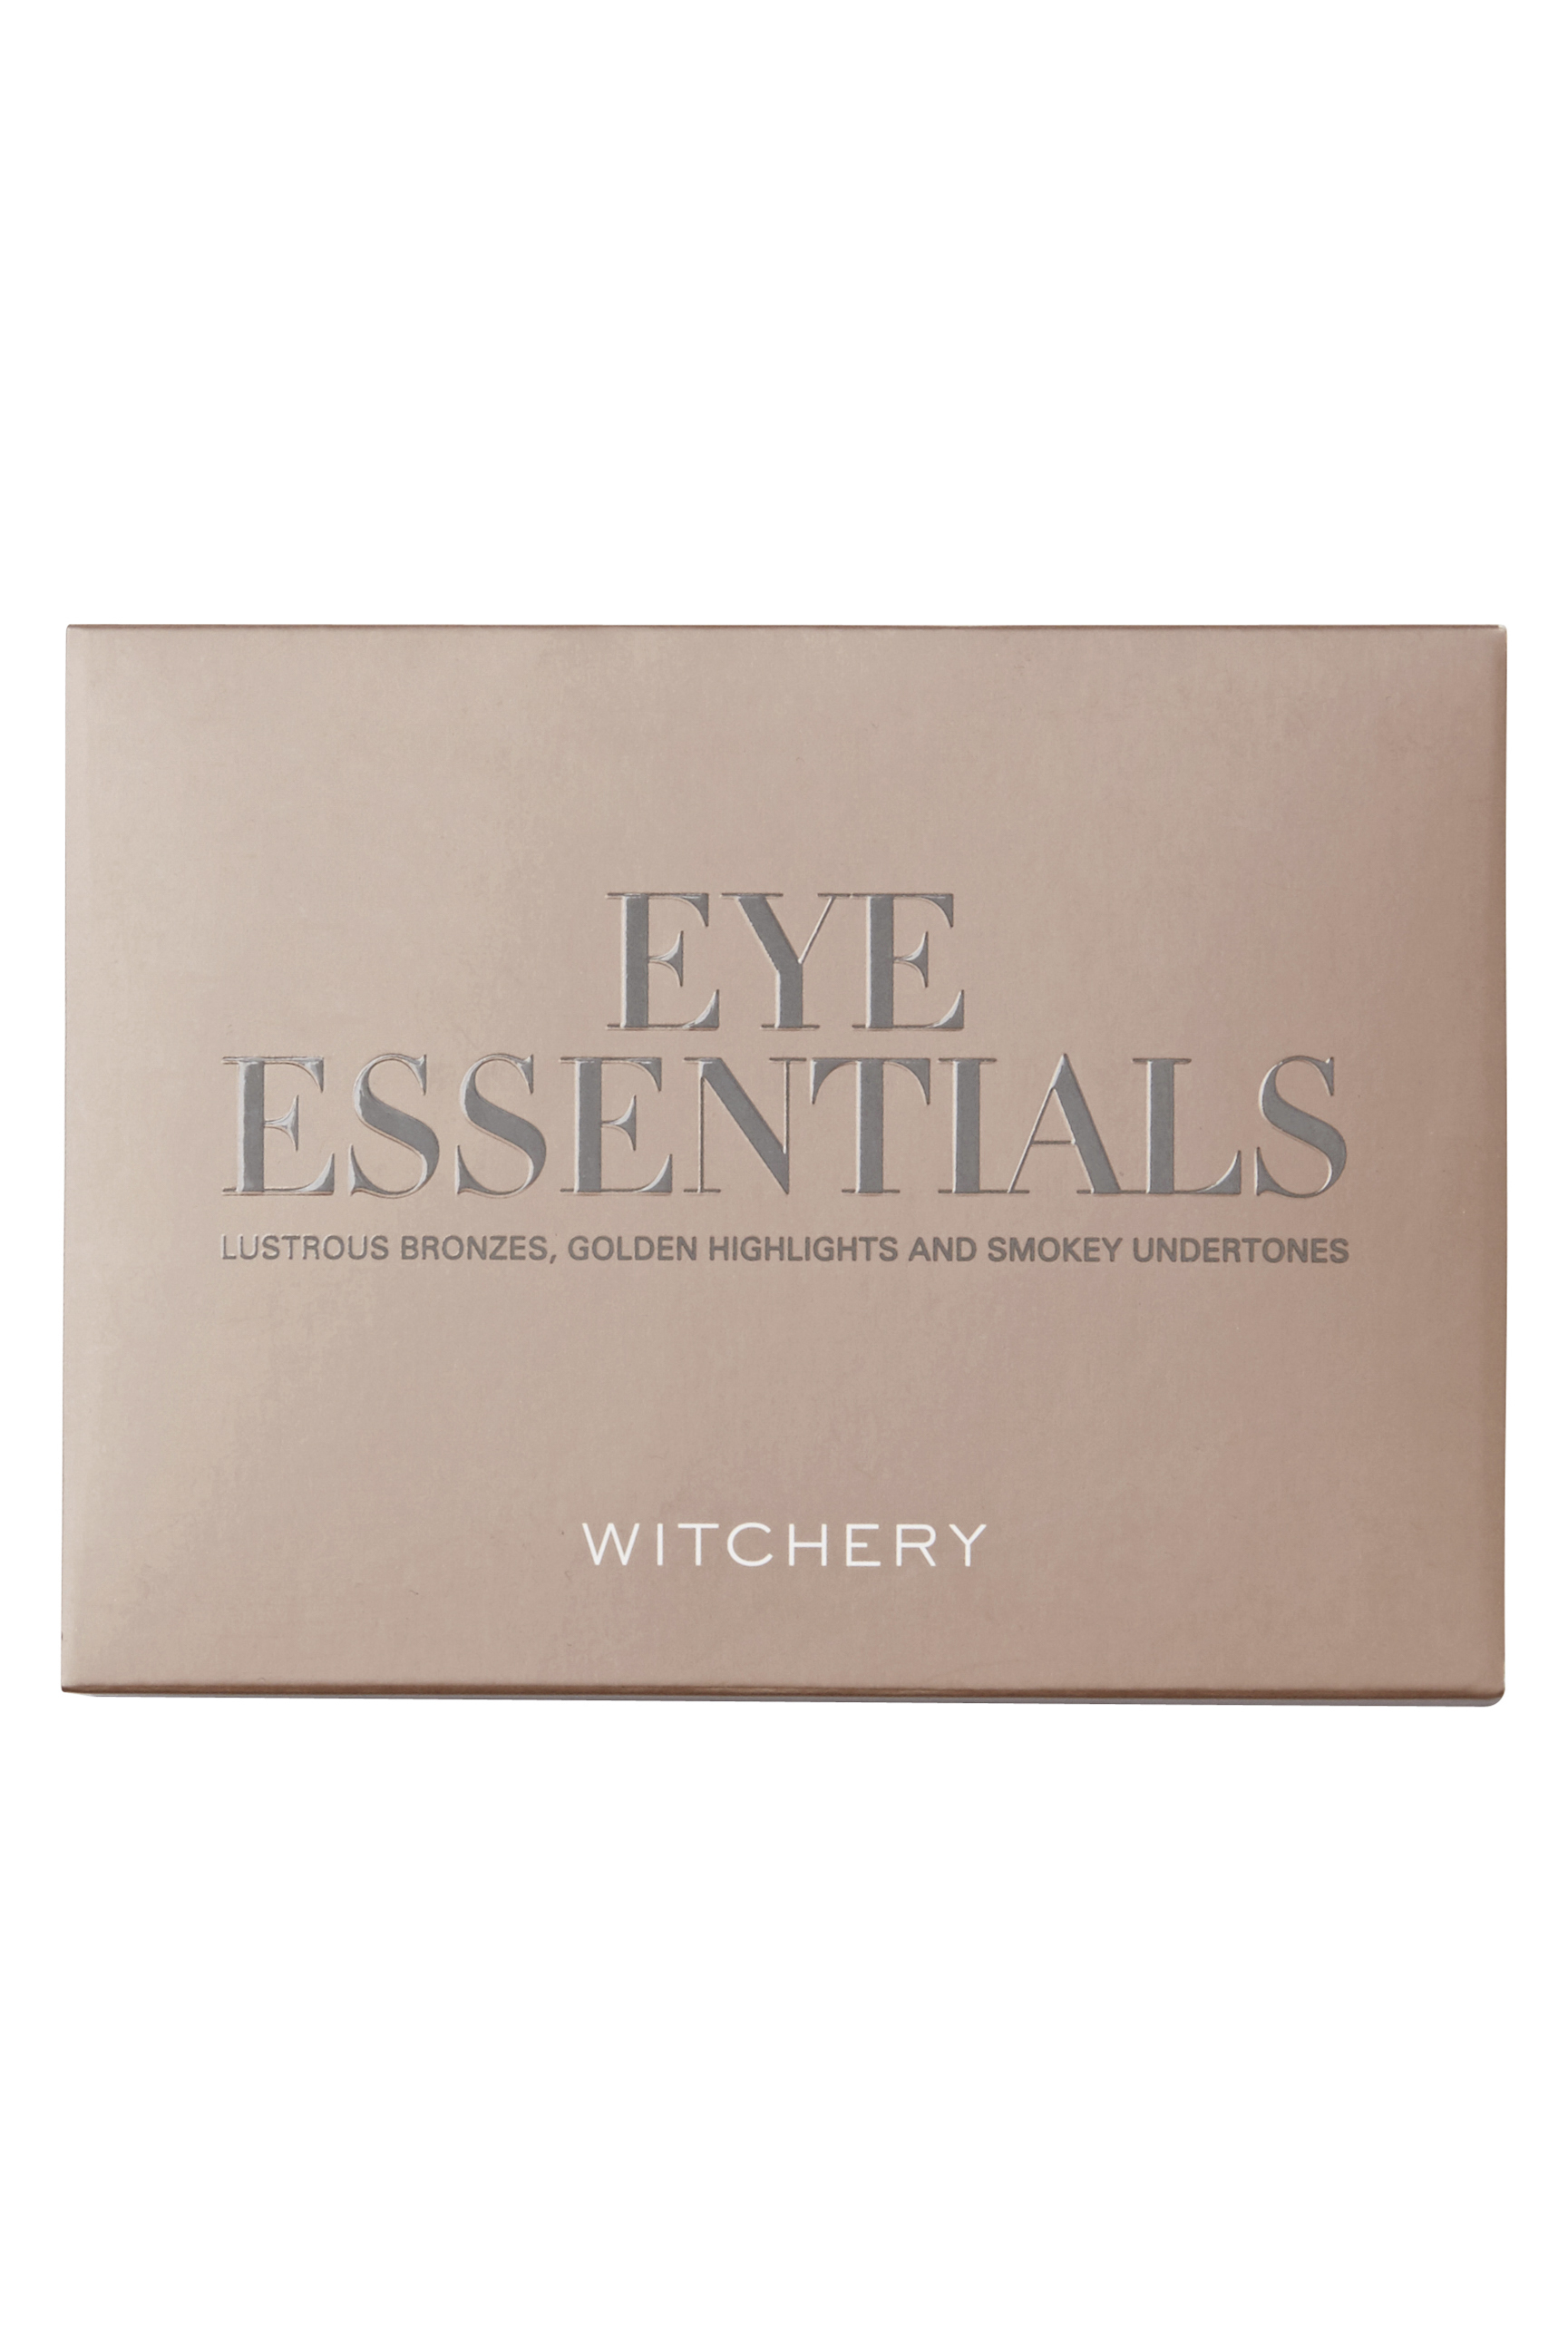 60194046_witcherybeauty-eye-essentials-rrp34-902